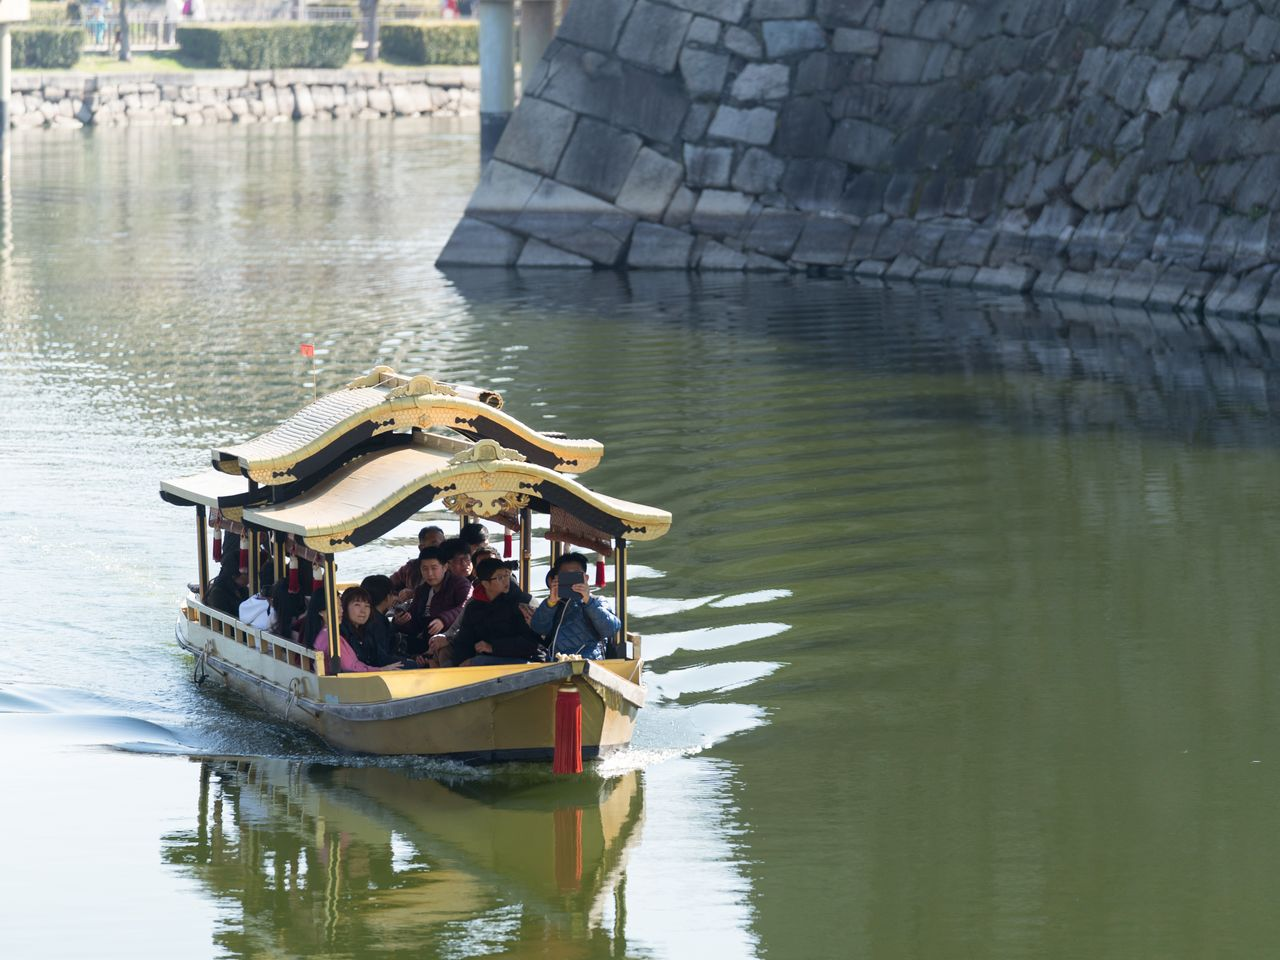 Osaka Castle <em>gozabune</em> pleasure boat plying the waters of the castle's inner moat on its 20-minute course.